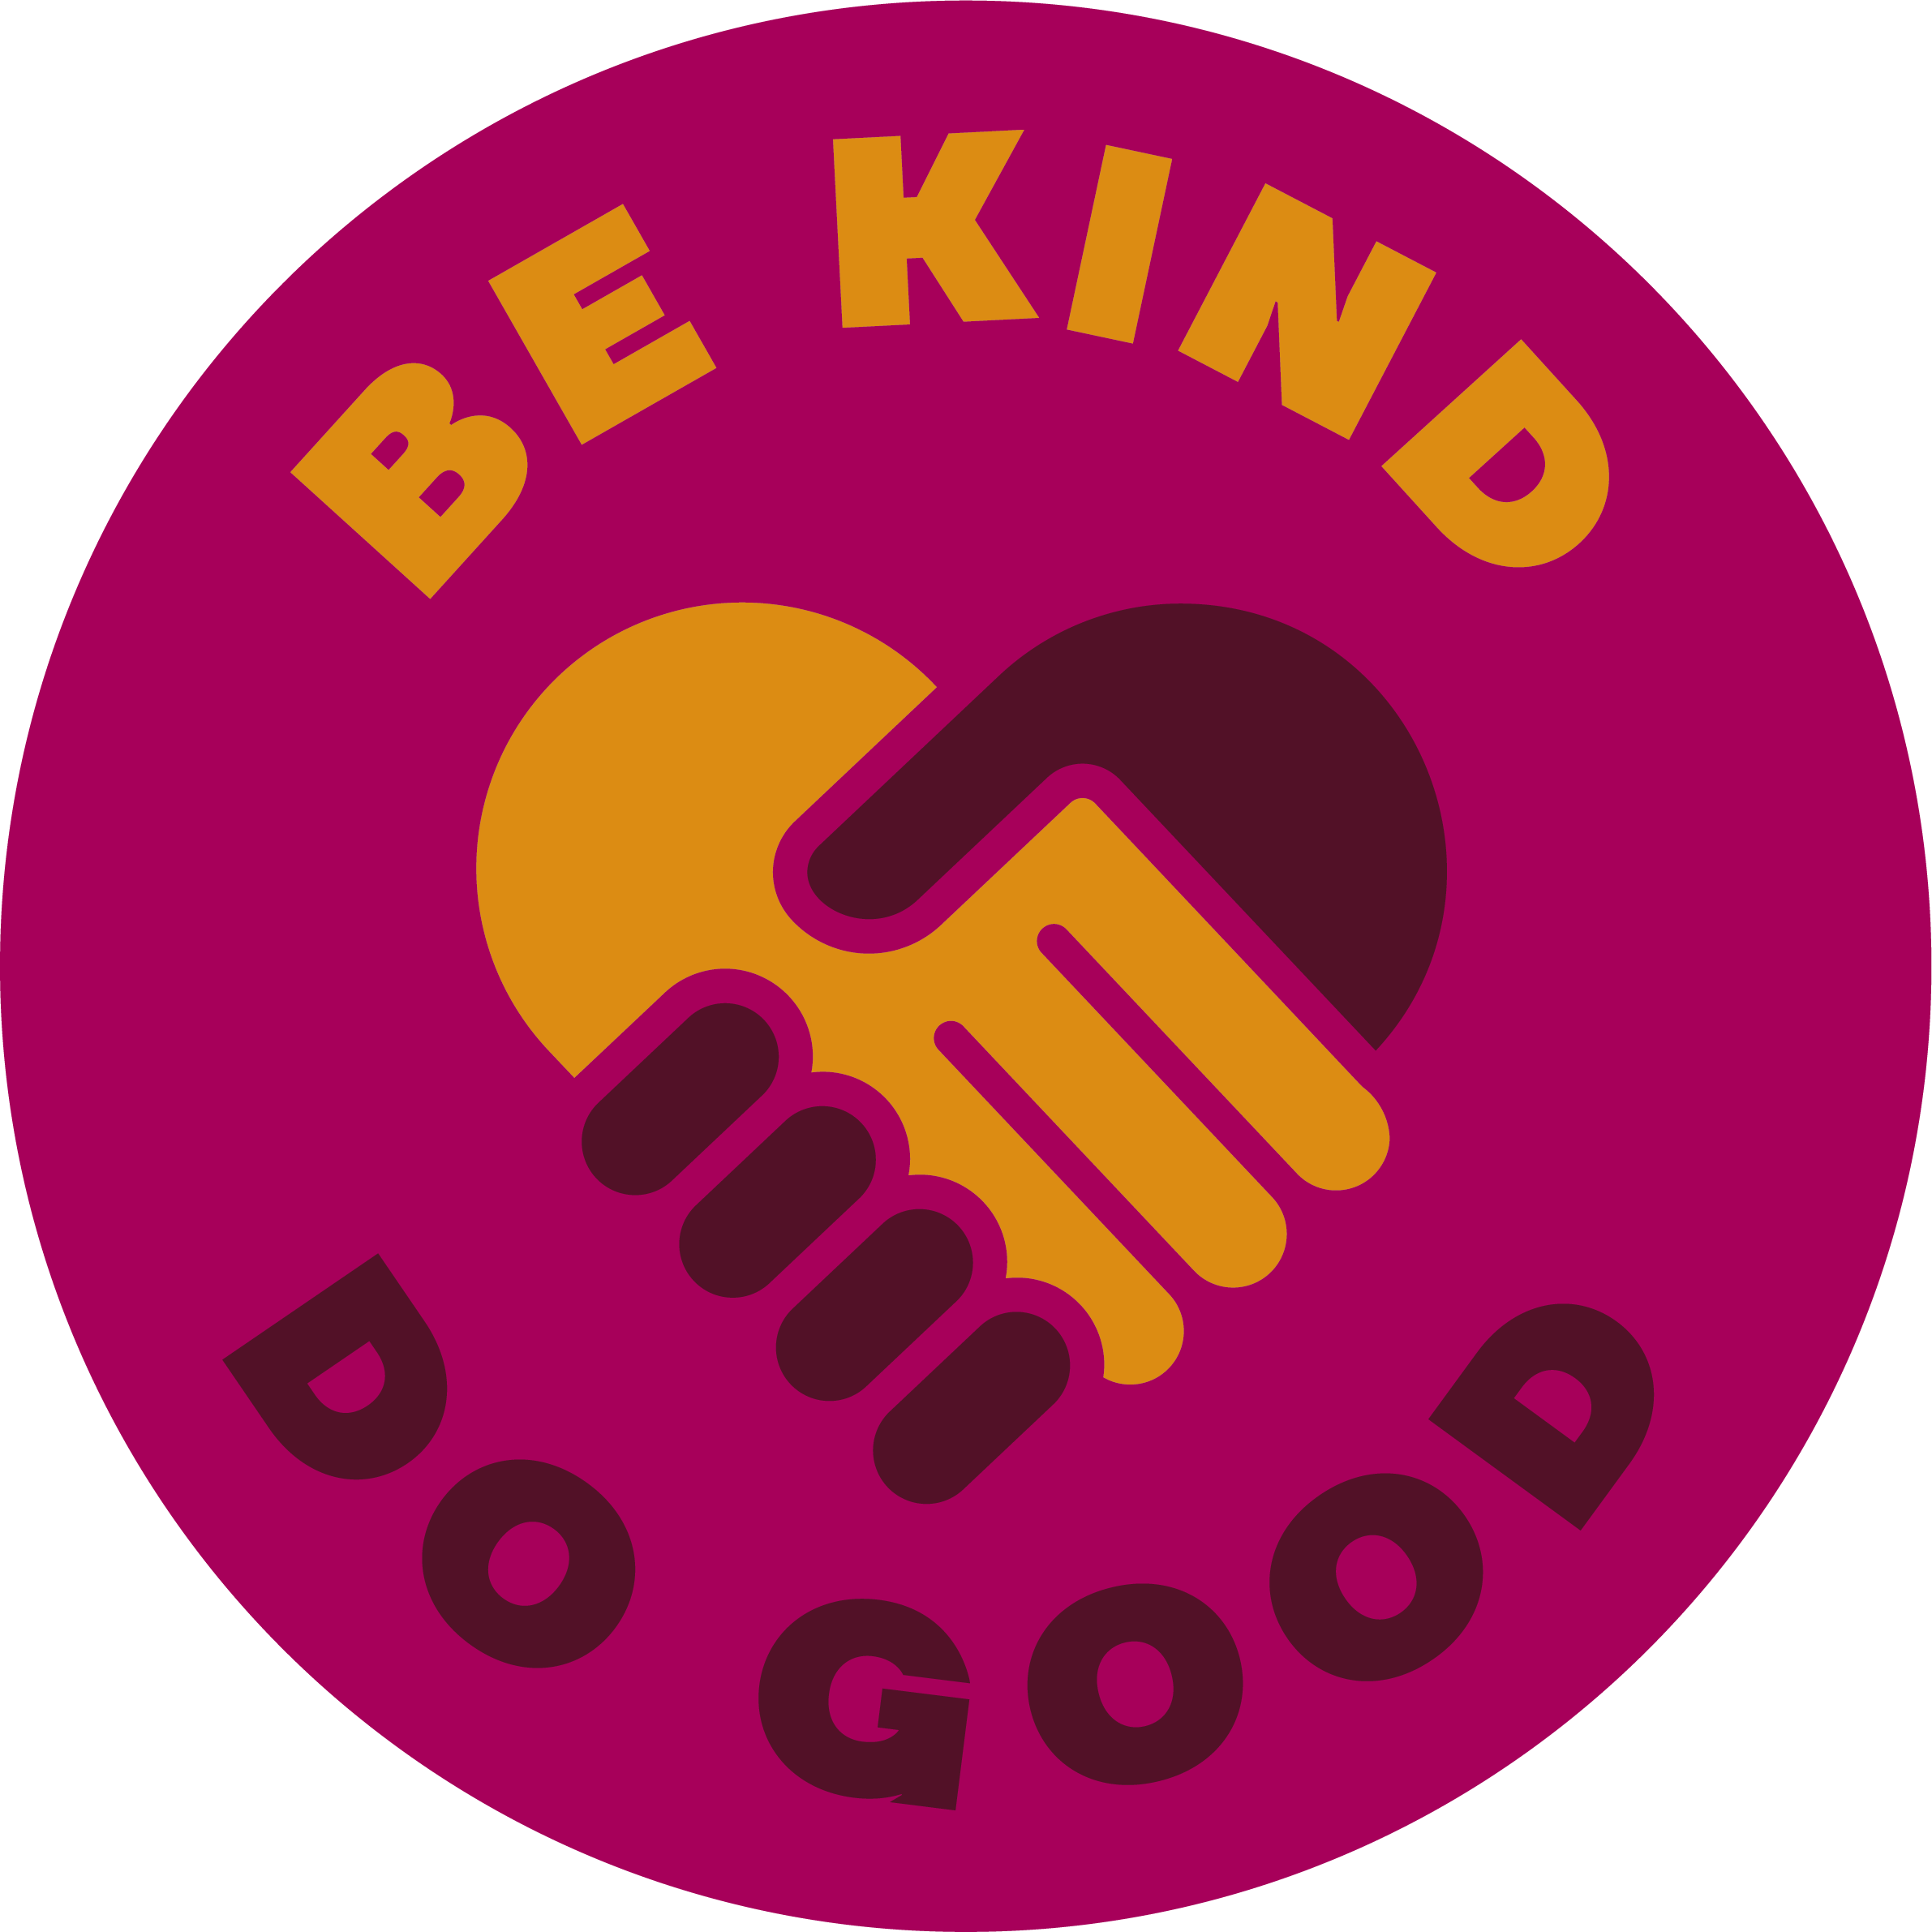 """Round sticker with an icon of two hand shaking, saying """"Be kind. Do good.""""."""